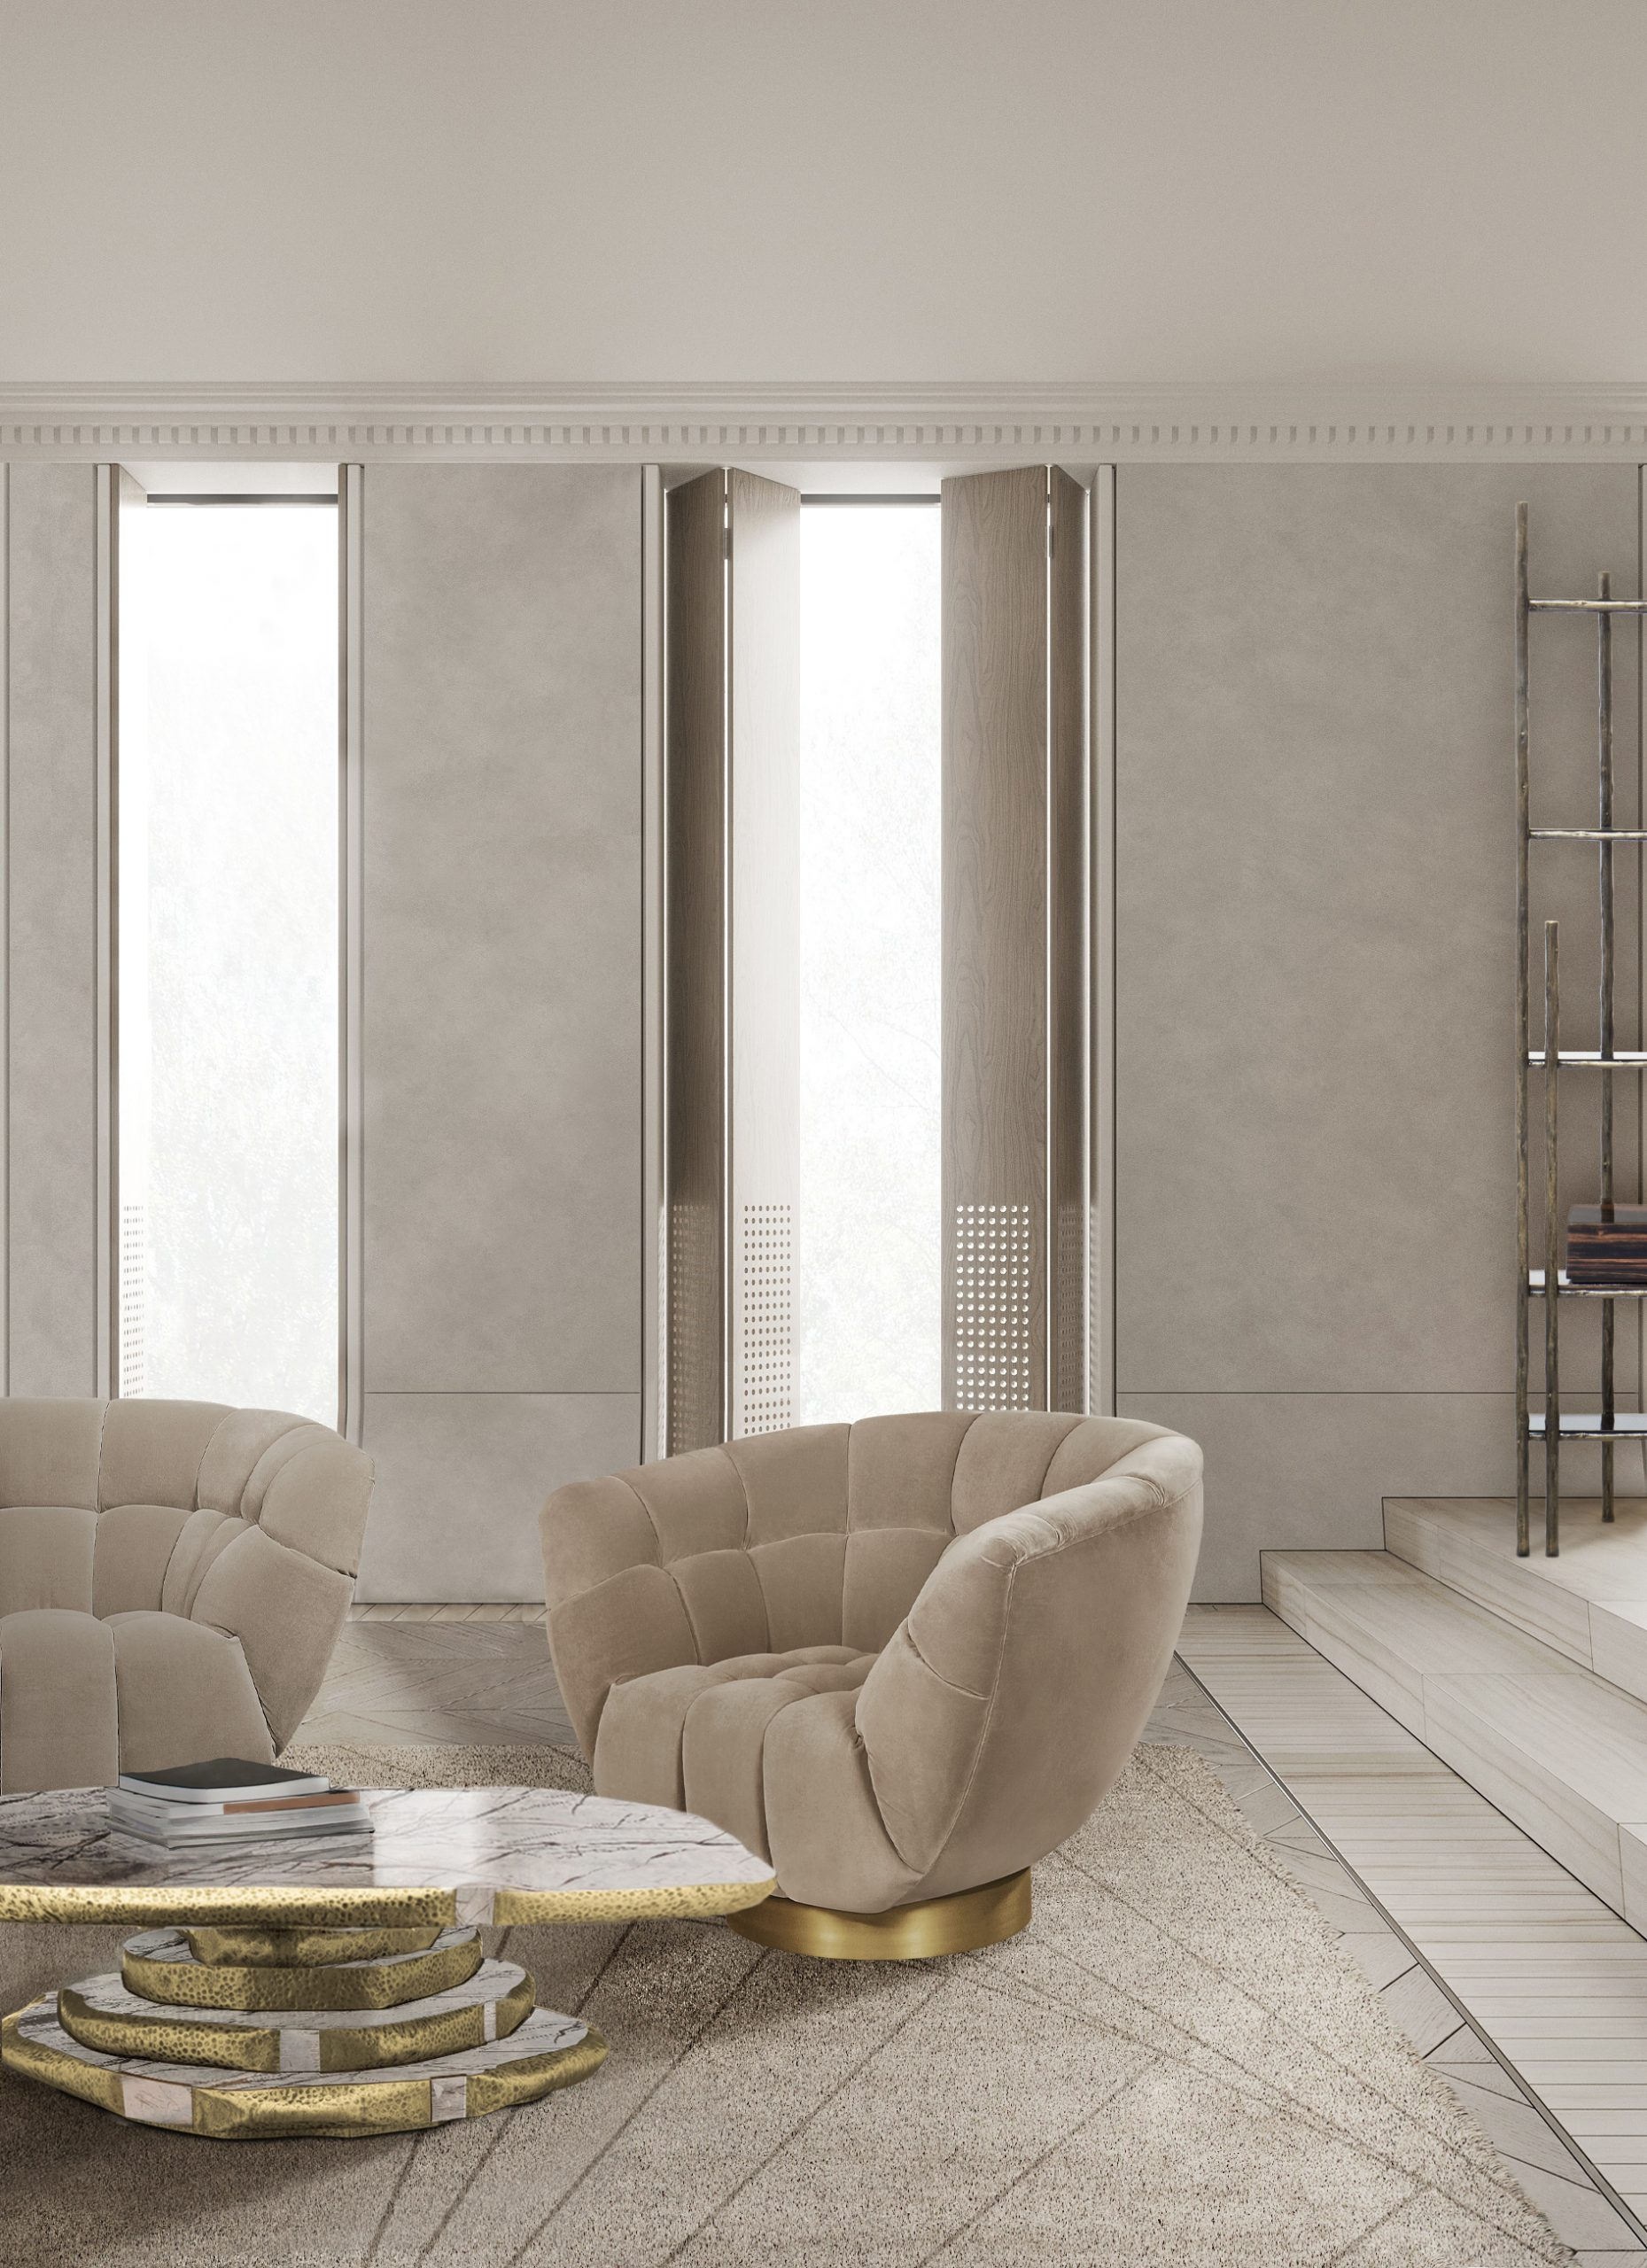 Spring Trends To Help You Choose The Best Sofa spring trends Spring Trends To Help You Choose The Best Sofa essex armchair latza center marble scaled